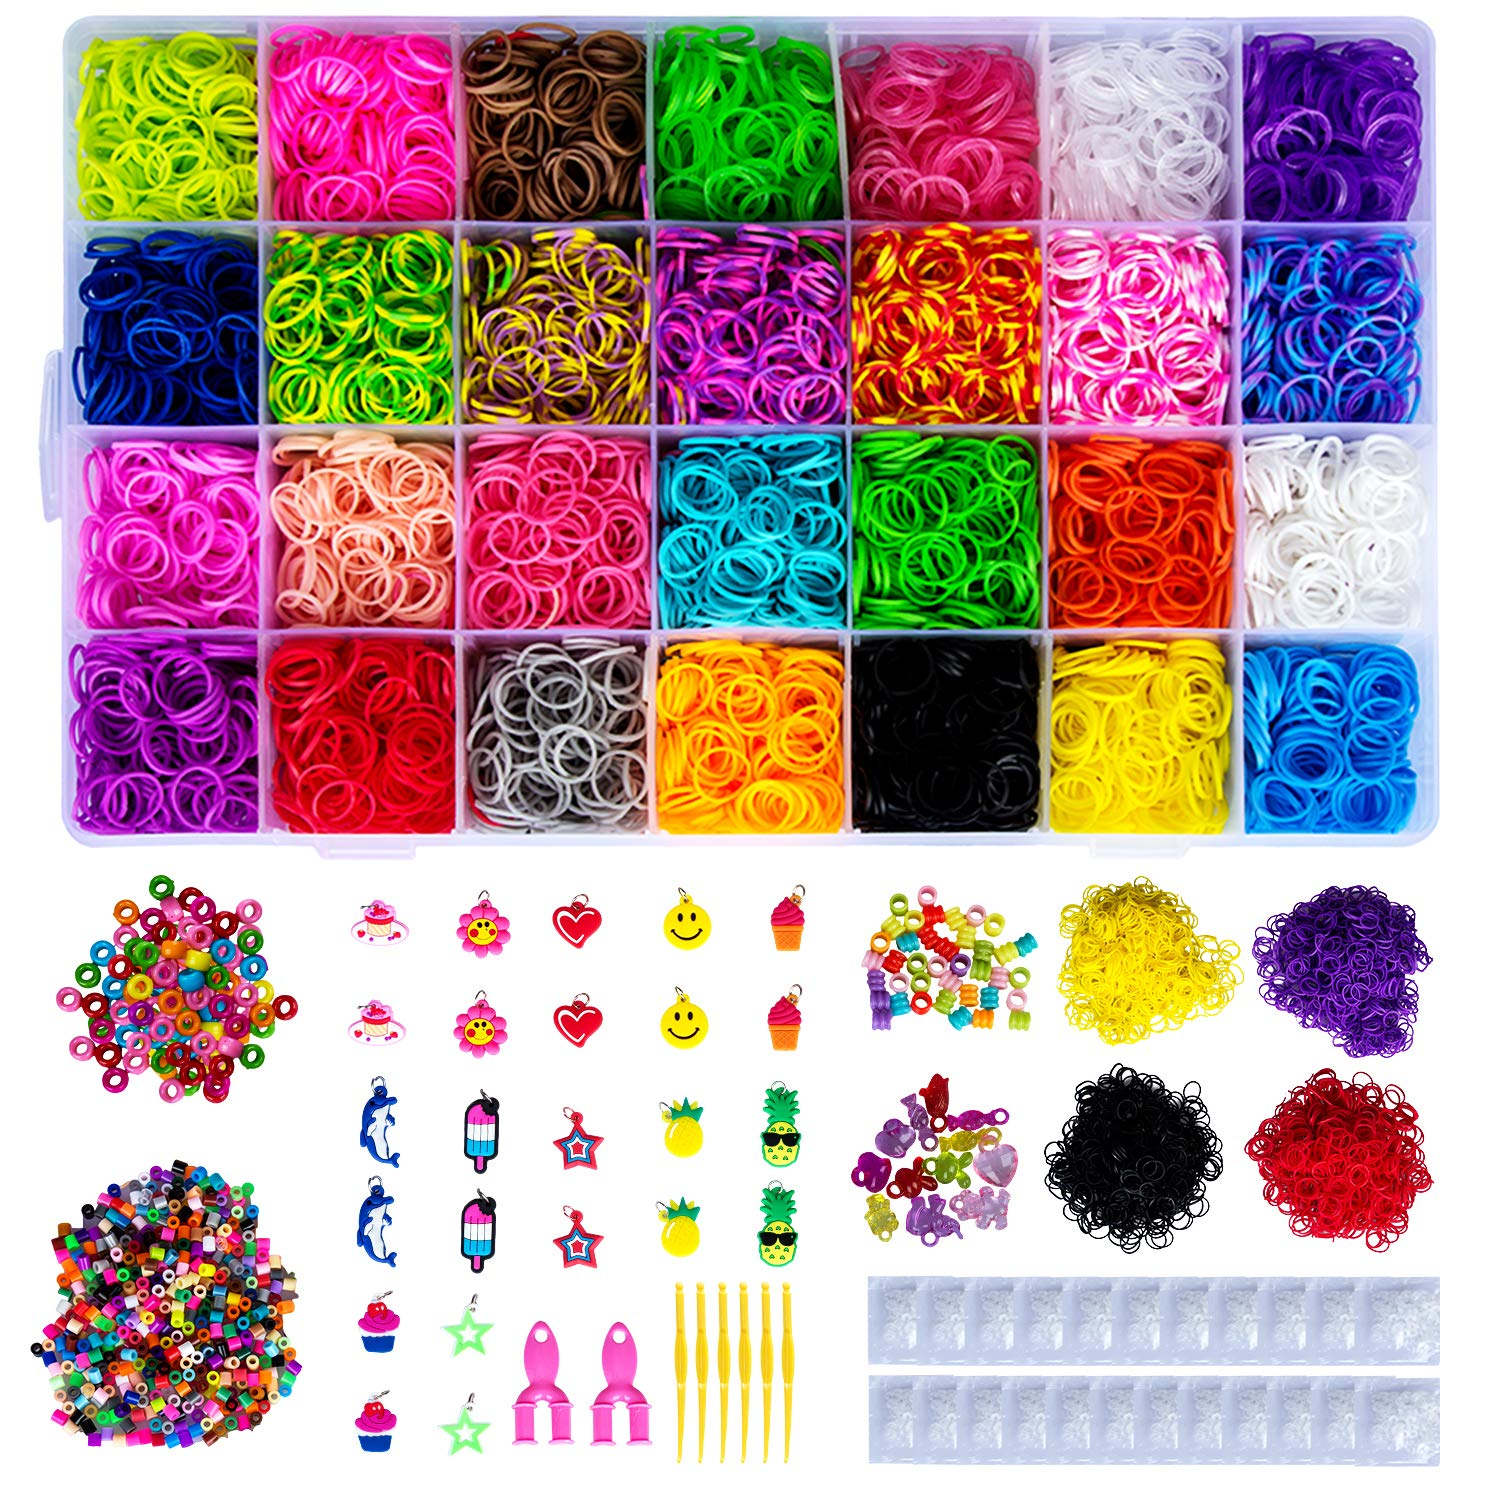 HOMEIDOL 13000+ Rainbow Rubber Bands Refill Kit, 12400 Loom Bands, 34 Charms, 675 Beads, 750 S-Clips, 10 Crystal Pendant,2 Y Loom,6 Crochet, Perfect Set for Prepare for Glory DIY by HOMEIDOL